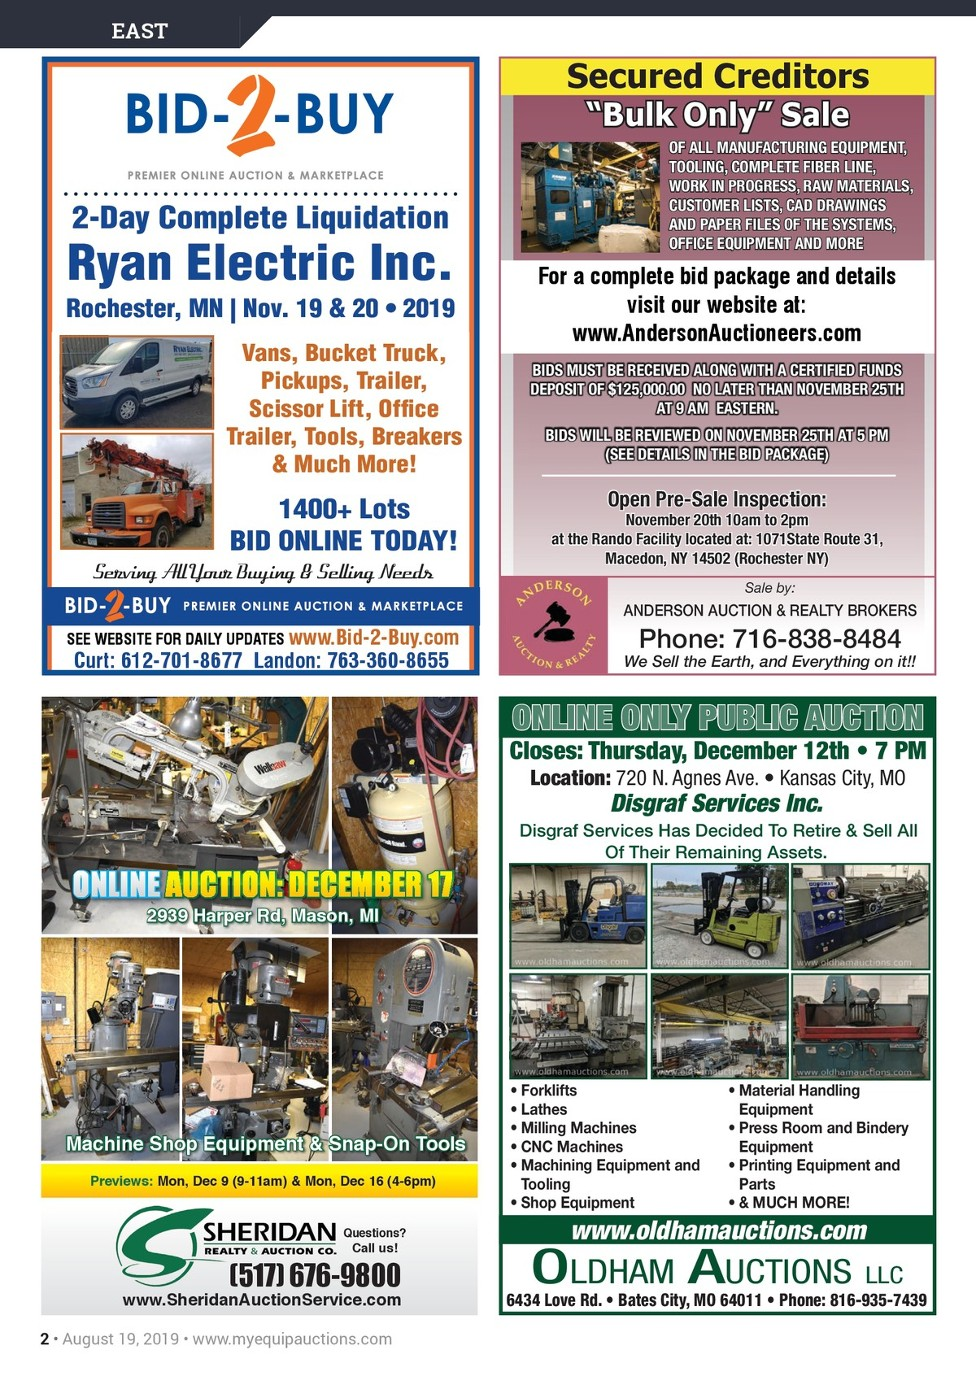 Myequipauctions Industrial 11182019